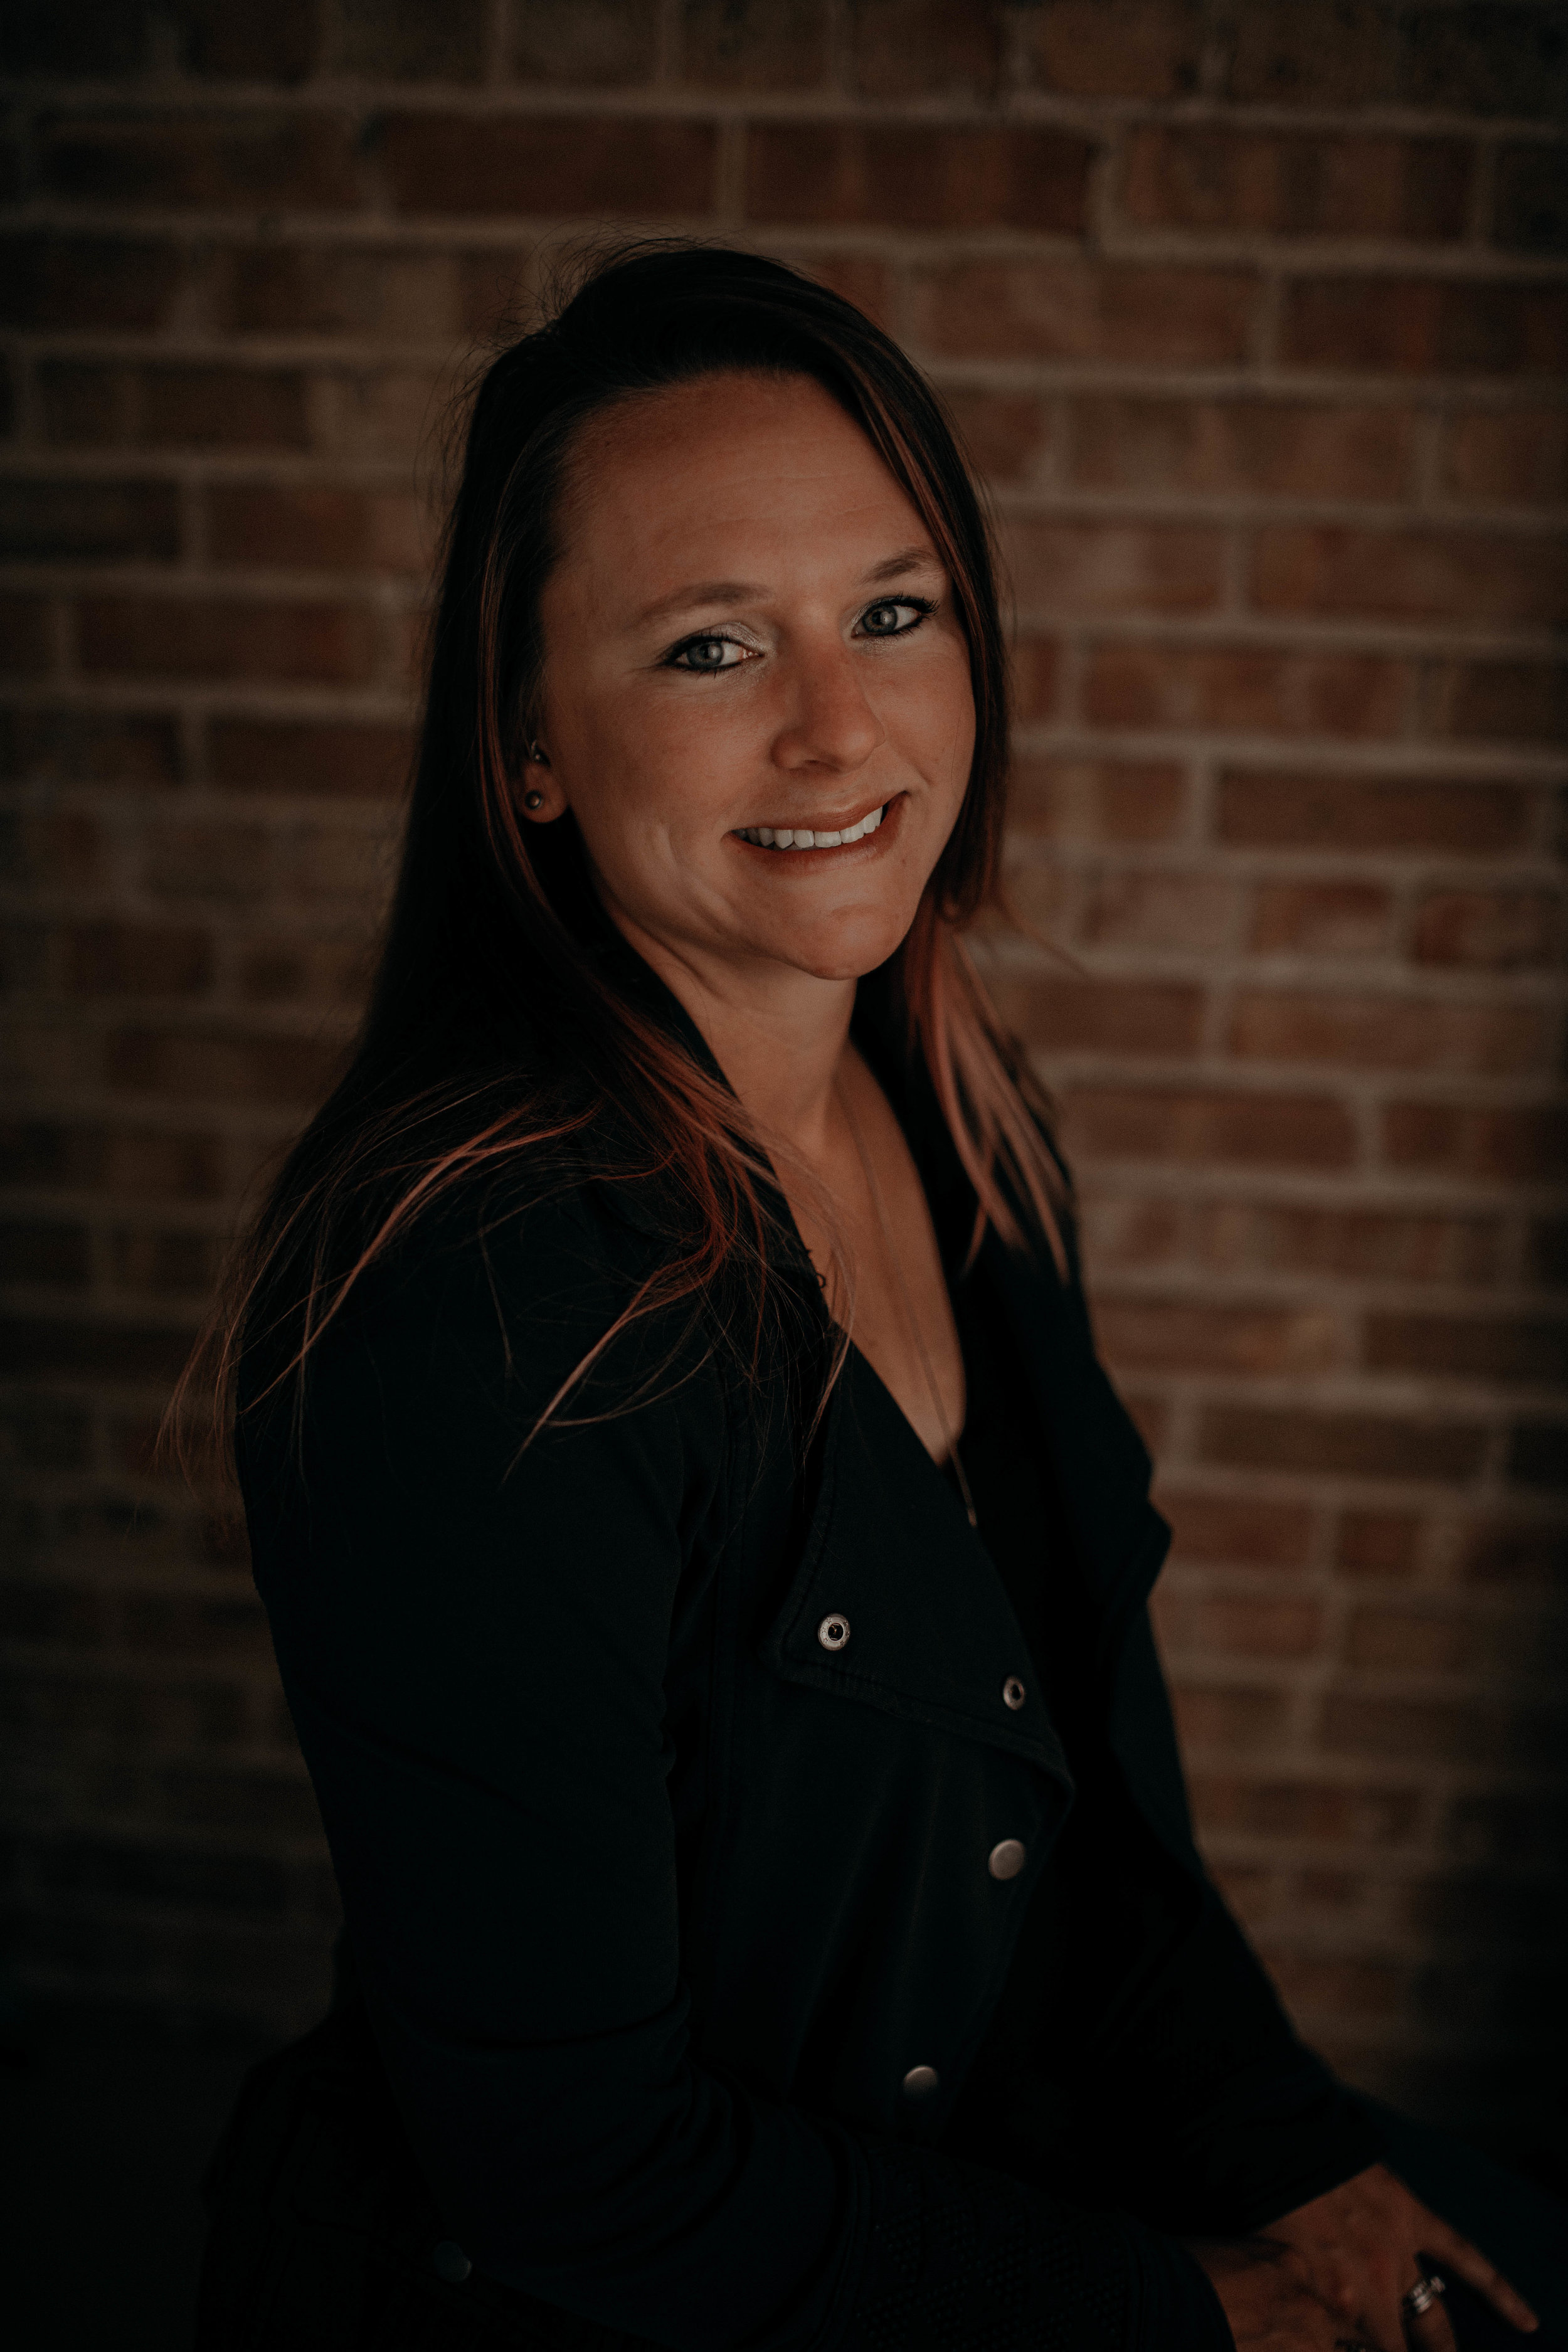 "Meet Colleen DeHart, our Professional Writer - I am a wearer of many hats -- writer, editor, creator, designer of the written word, and multimedia professional. I work hard. I am driven, passionate, and dependable.The written word can be so much more than some letters on a page. It has the ability to redirect a person's thoughts, deliver them to a new place, and make even the most mundane interesting. The journalistic requirement to present even the most complicated of topics in terms that every person on the street can understand is a skill, and one I feel I have honed over time. Everyone has a story, and everything has something that makes it jump off the page—my job is to find what that is and bring it to the front. It is a task I don't take lightly.I have been working as a blog writer for the past two years for multiple therapy practices. One of my clients told me I should have an ""honorary psychology degree"" for my ability to understand mental health topics quickly and translate them into a well written blog post."